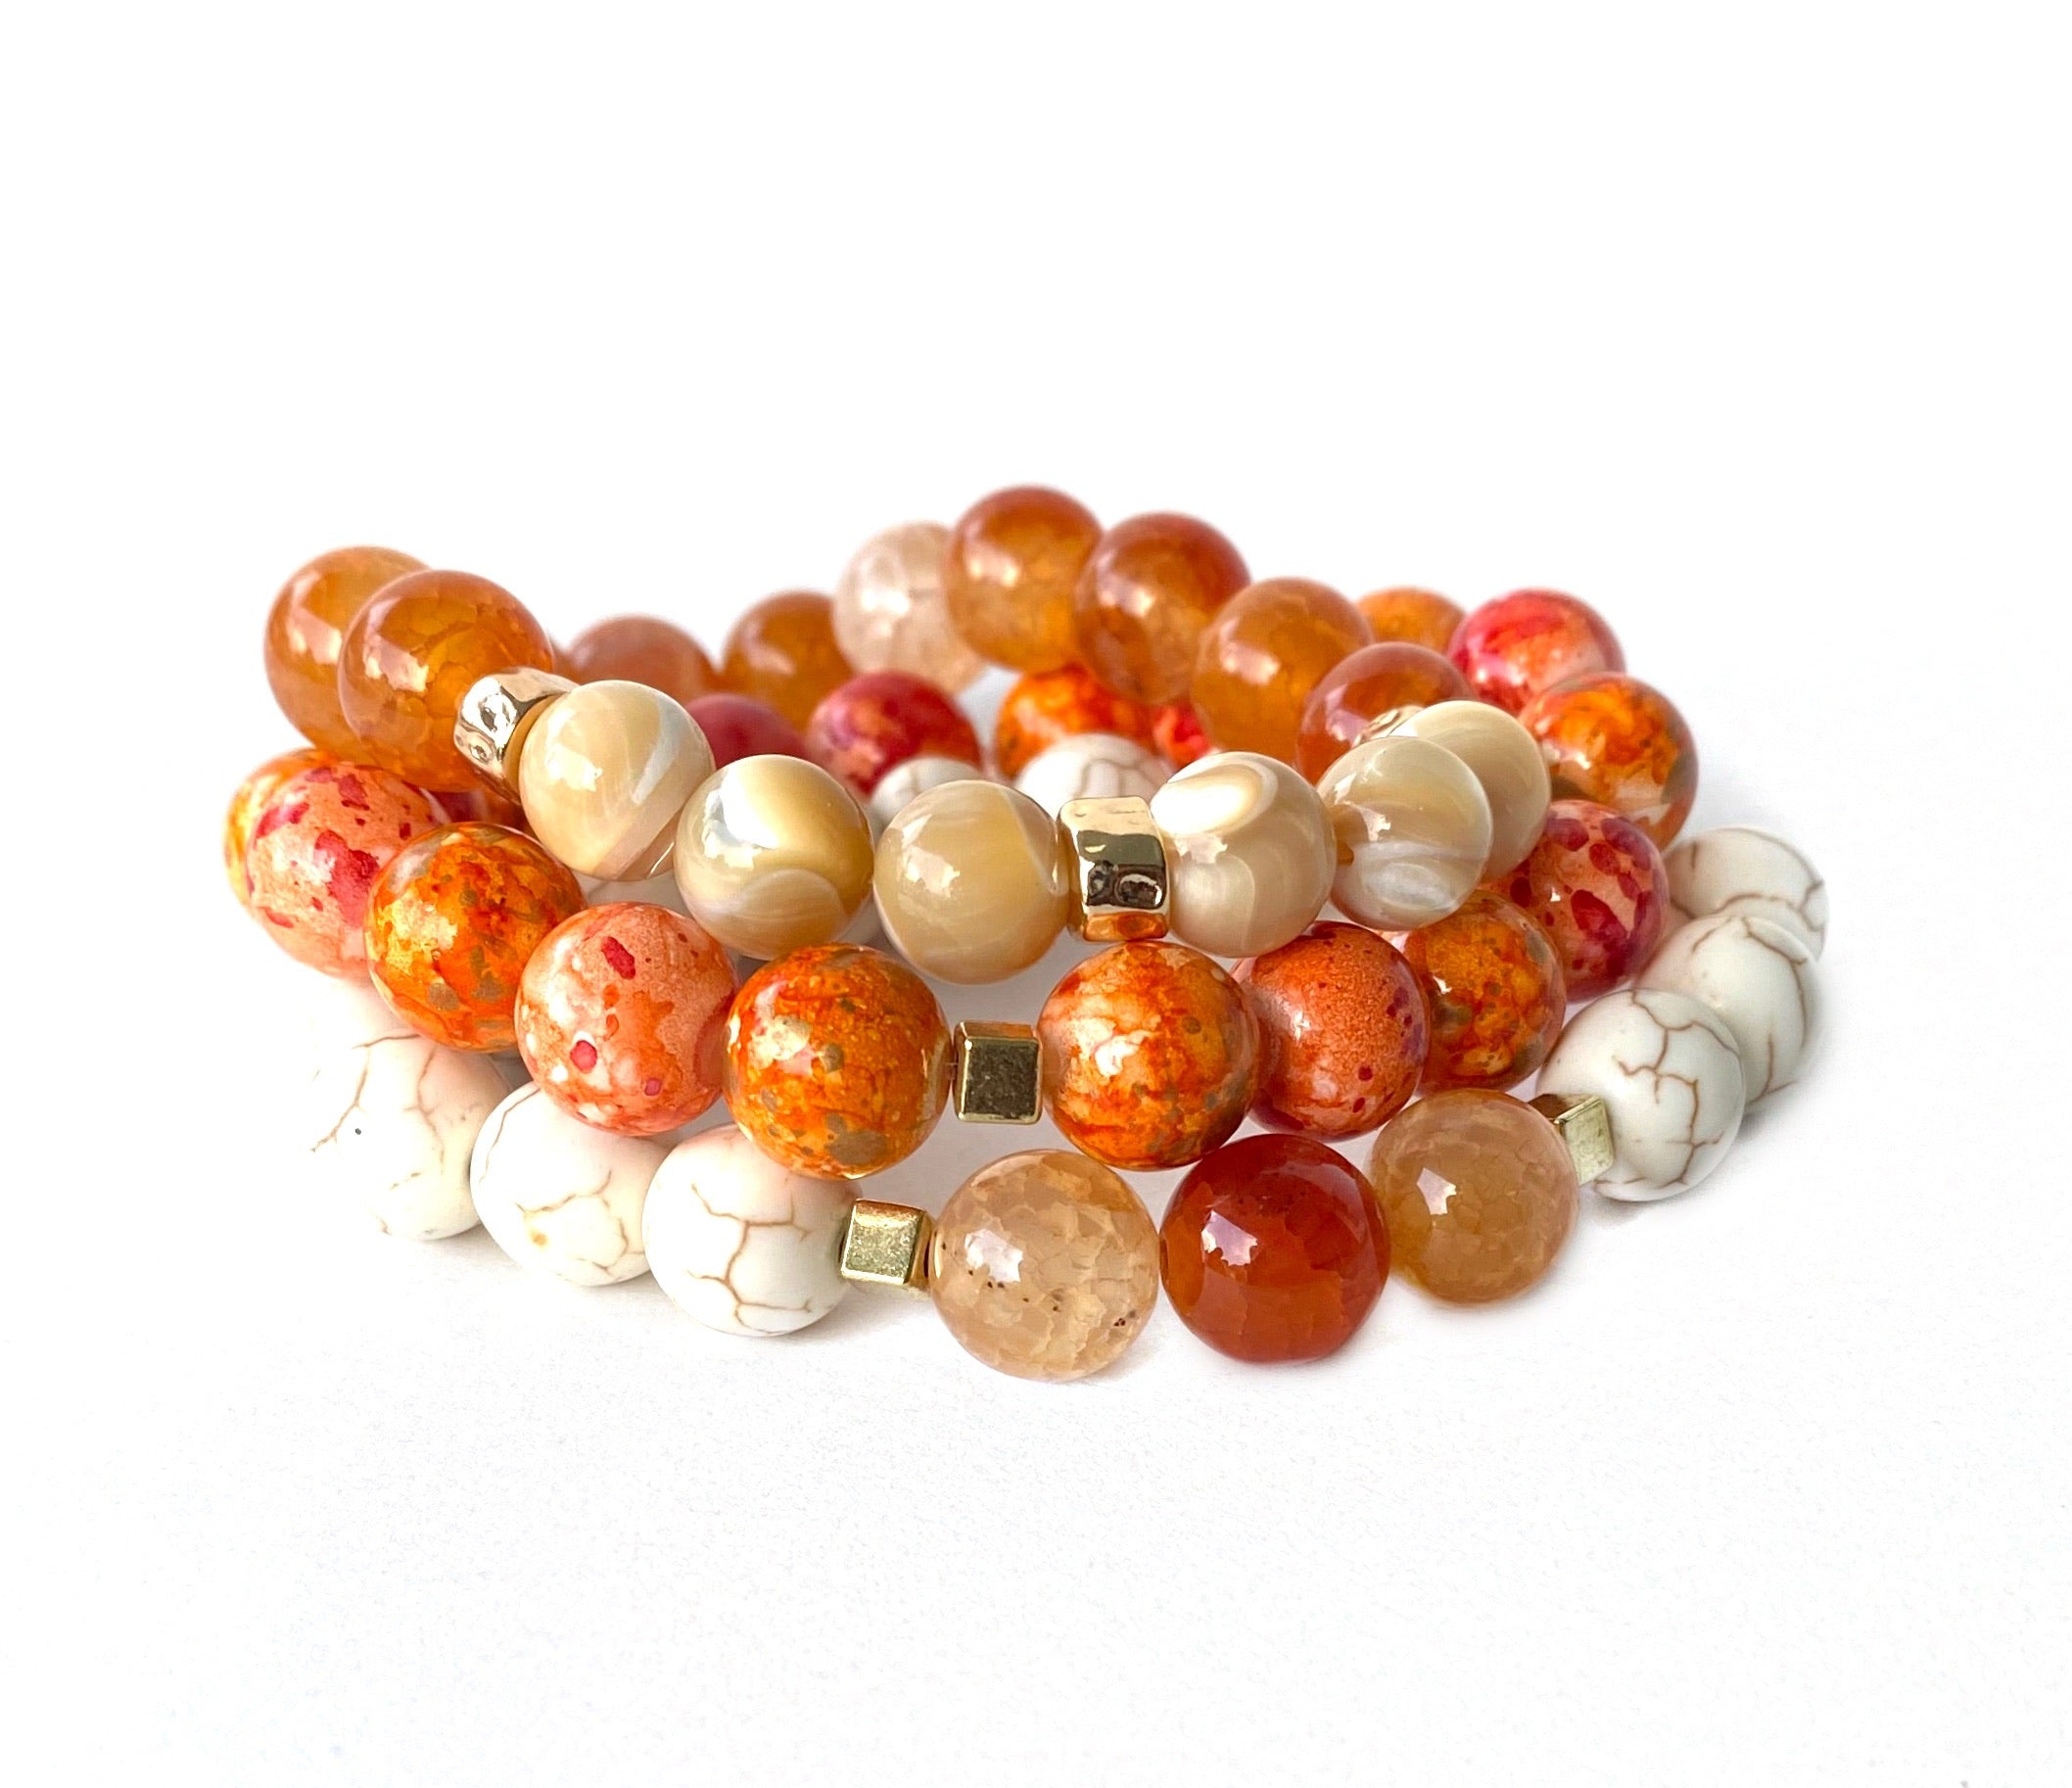 Fire Agate Dyed Amber & Orange Beaded Bracelet Stack